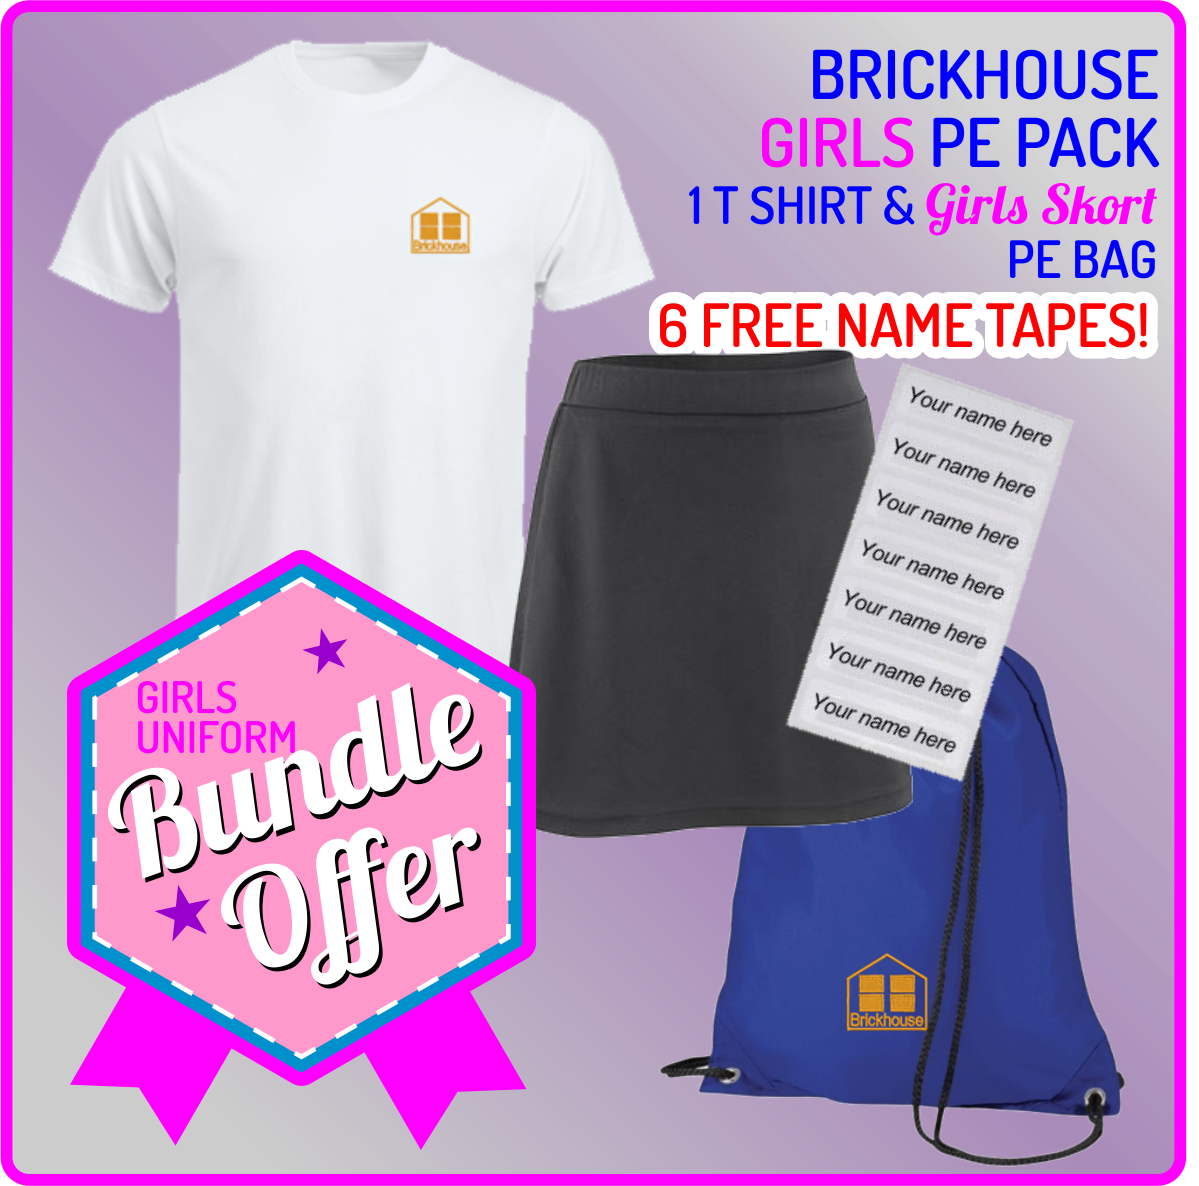 Bundle offer of T Shirt, Girls Skorts and a PE Bag! - includes FREE NAMES TAPES!